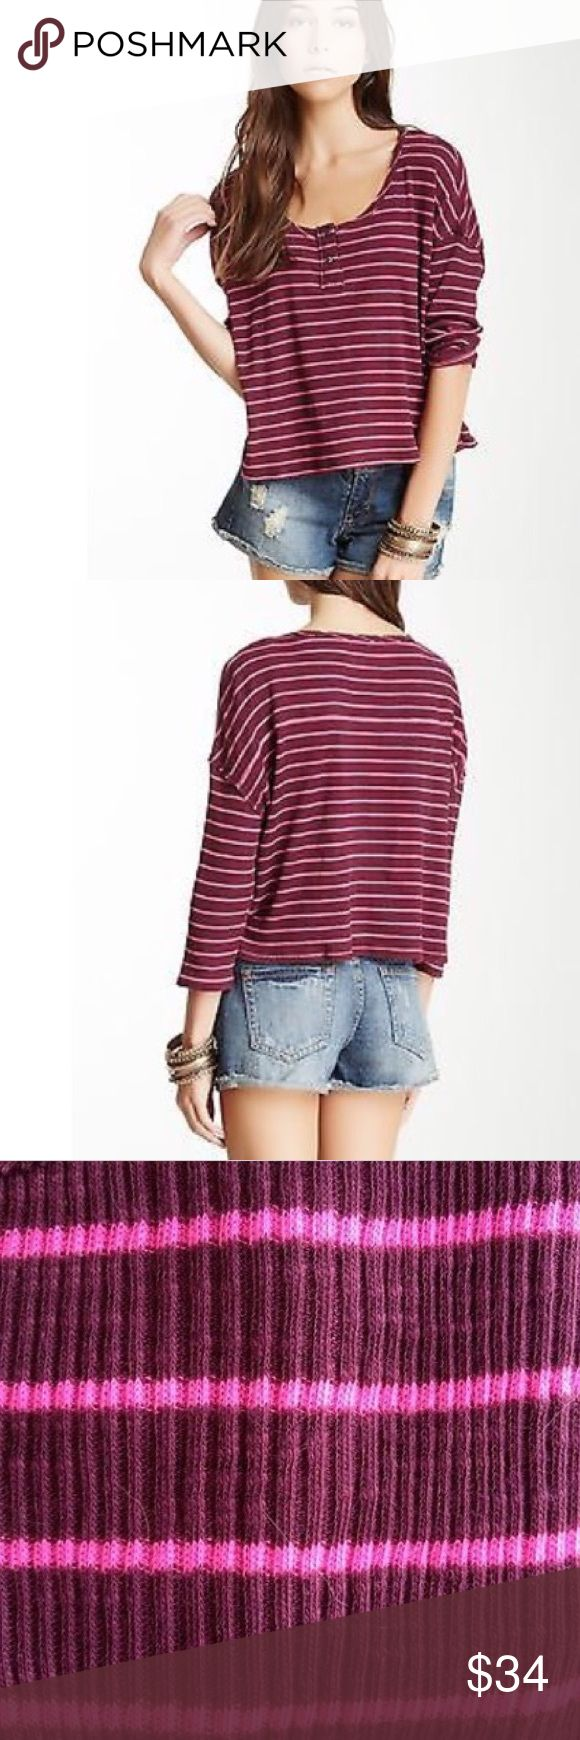 Free People Garvey Stripe Cotton Henley Top This is a Free People Garvey Stripe Cotton Henley Top in Plumberry/Shocking Pink Combo. Size: L. MSRP $68. NWT. * Drop-shoulder seam. * Cropped cotton-poly henley flaunts a boxy silhouette. * Round neck and 3/4 sleeves. * Two- button placket. * Steiped design throughout. * Drop-shoulder detailing. * Made of 83% Cotton 17% Polyester  * Machine wash * Imported Free People Tops Crop Tops